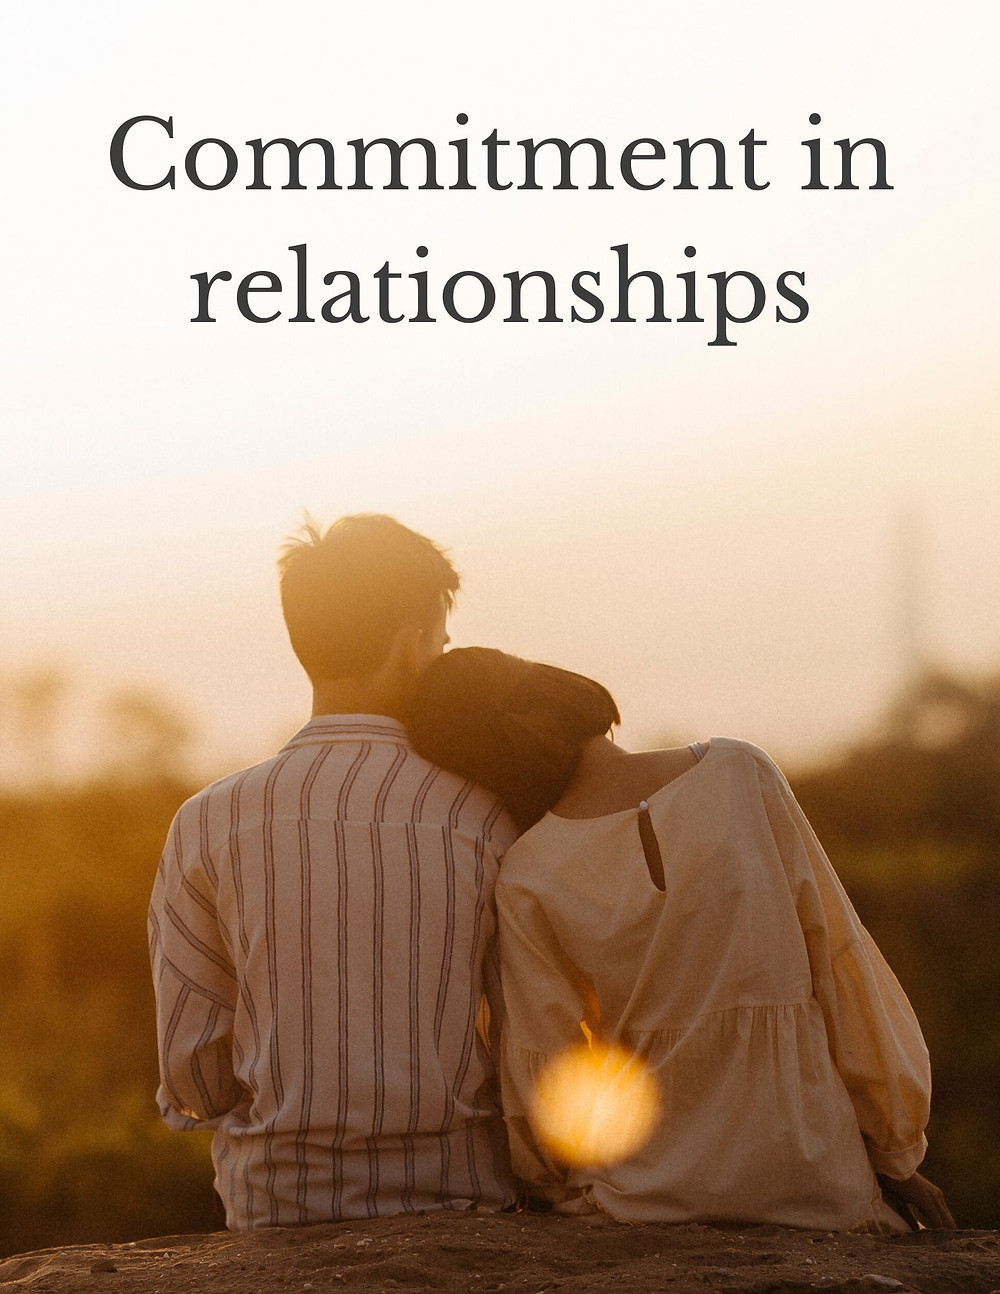 Commitment in relationships